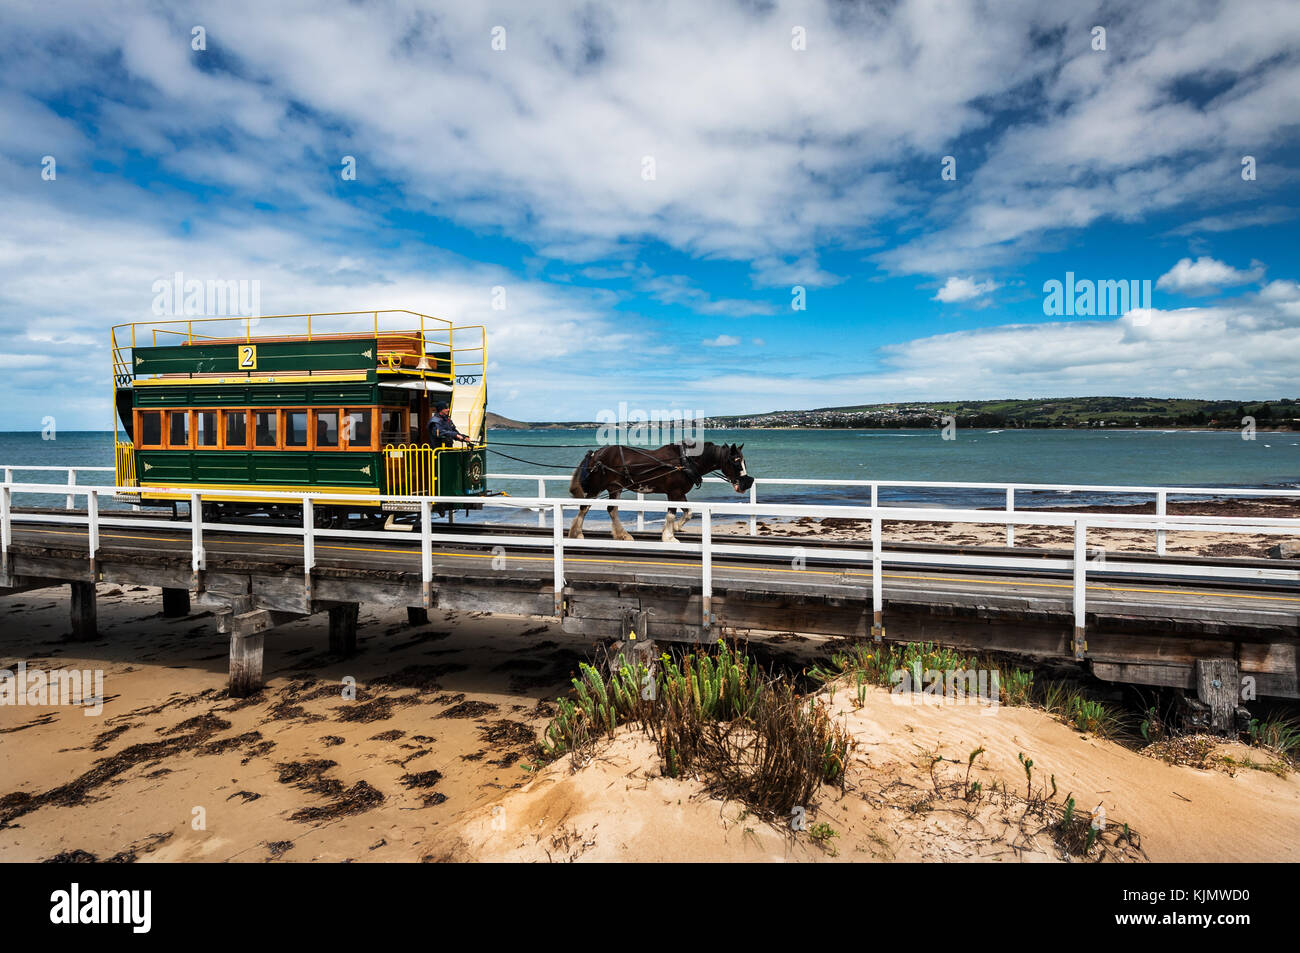 Famous Horse Drawn Tram in Victor Harbor. - Stock Image